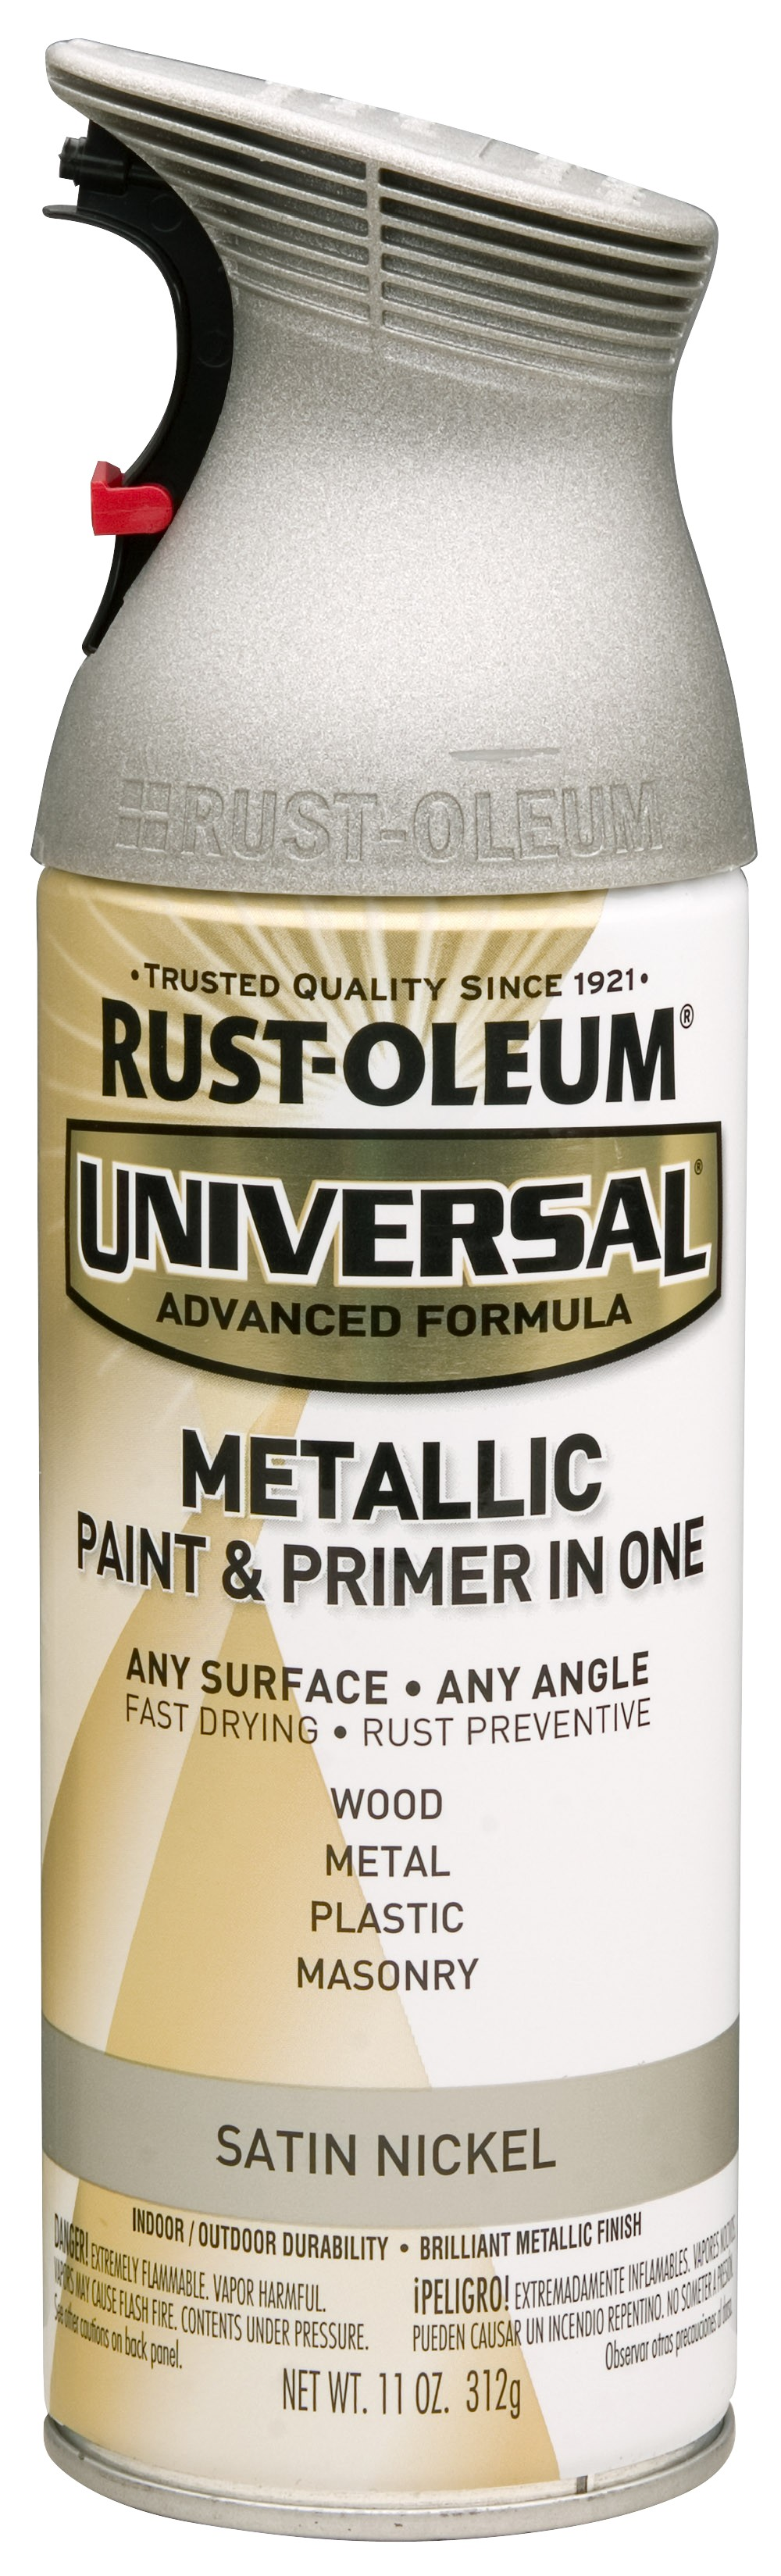 (3 Pack) Rust-Oleum Universal All Surface Metallic Satin Nickel Spray Paint and Primer in 1, 11 oz